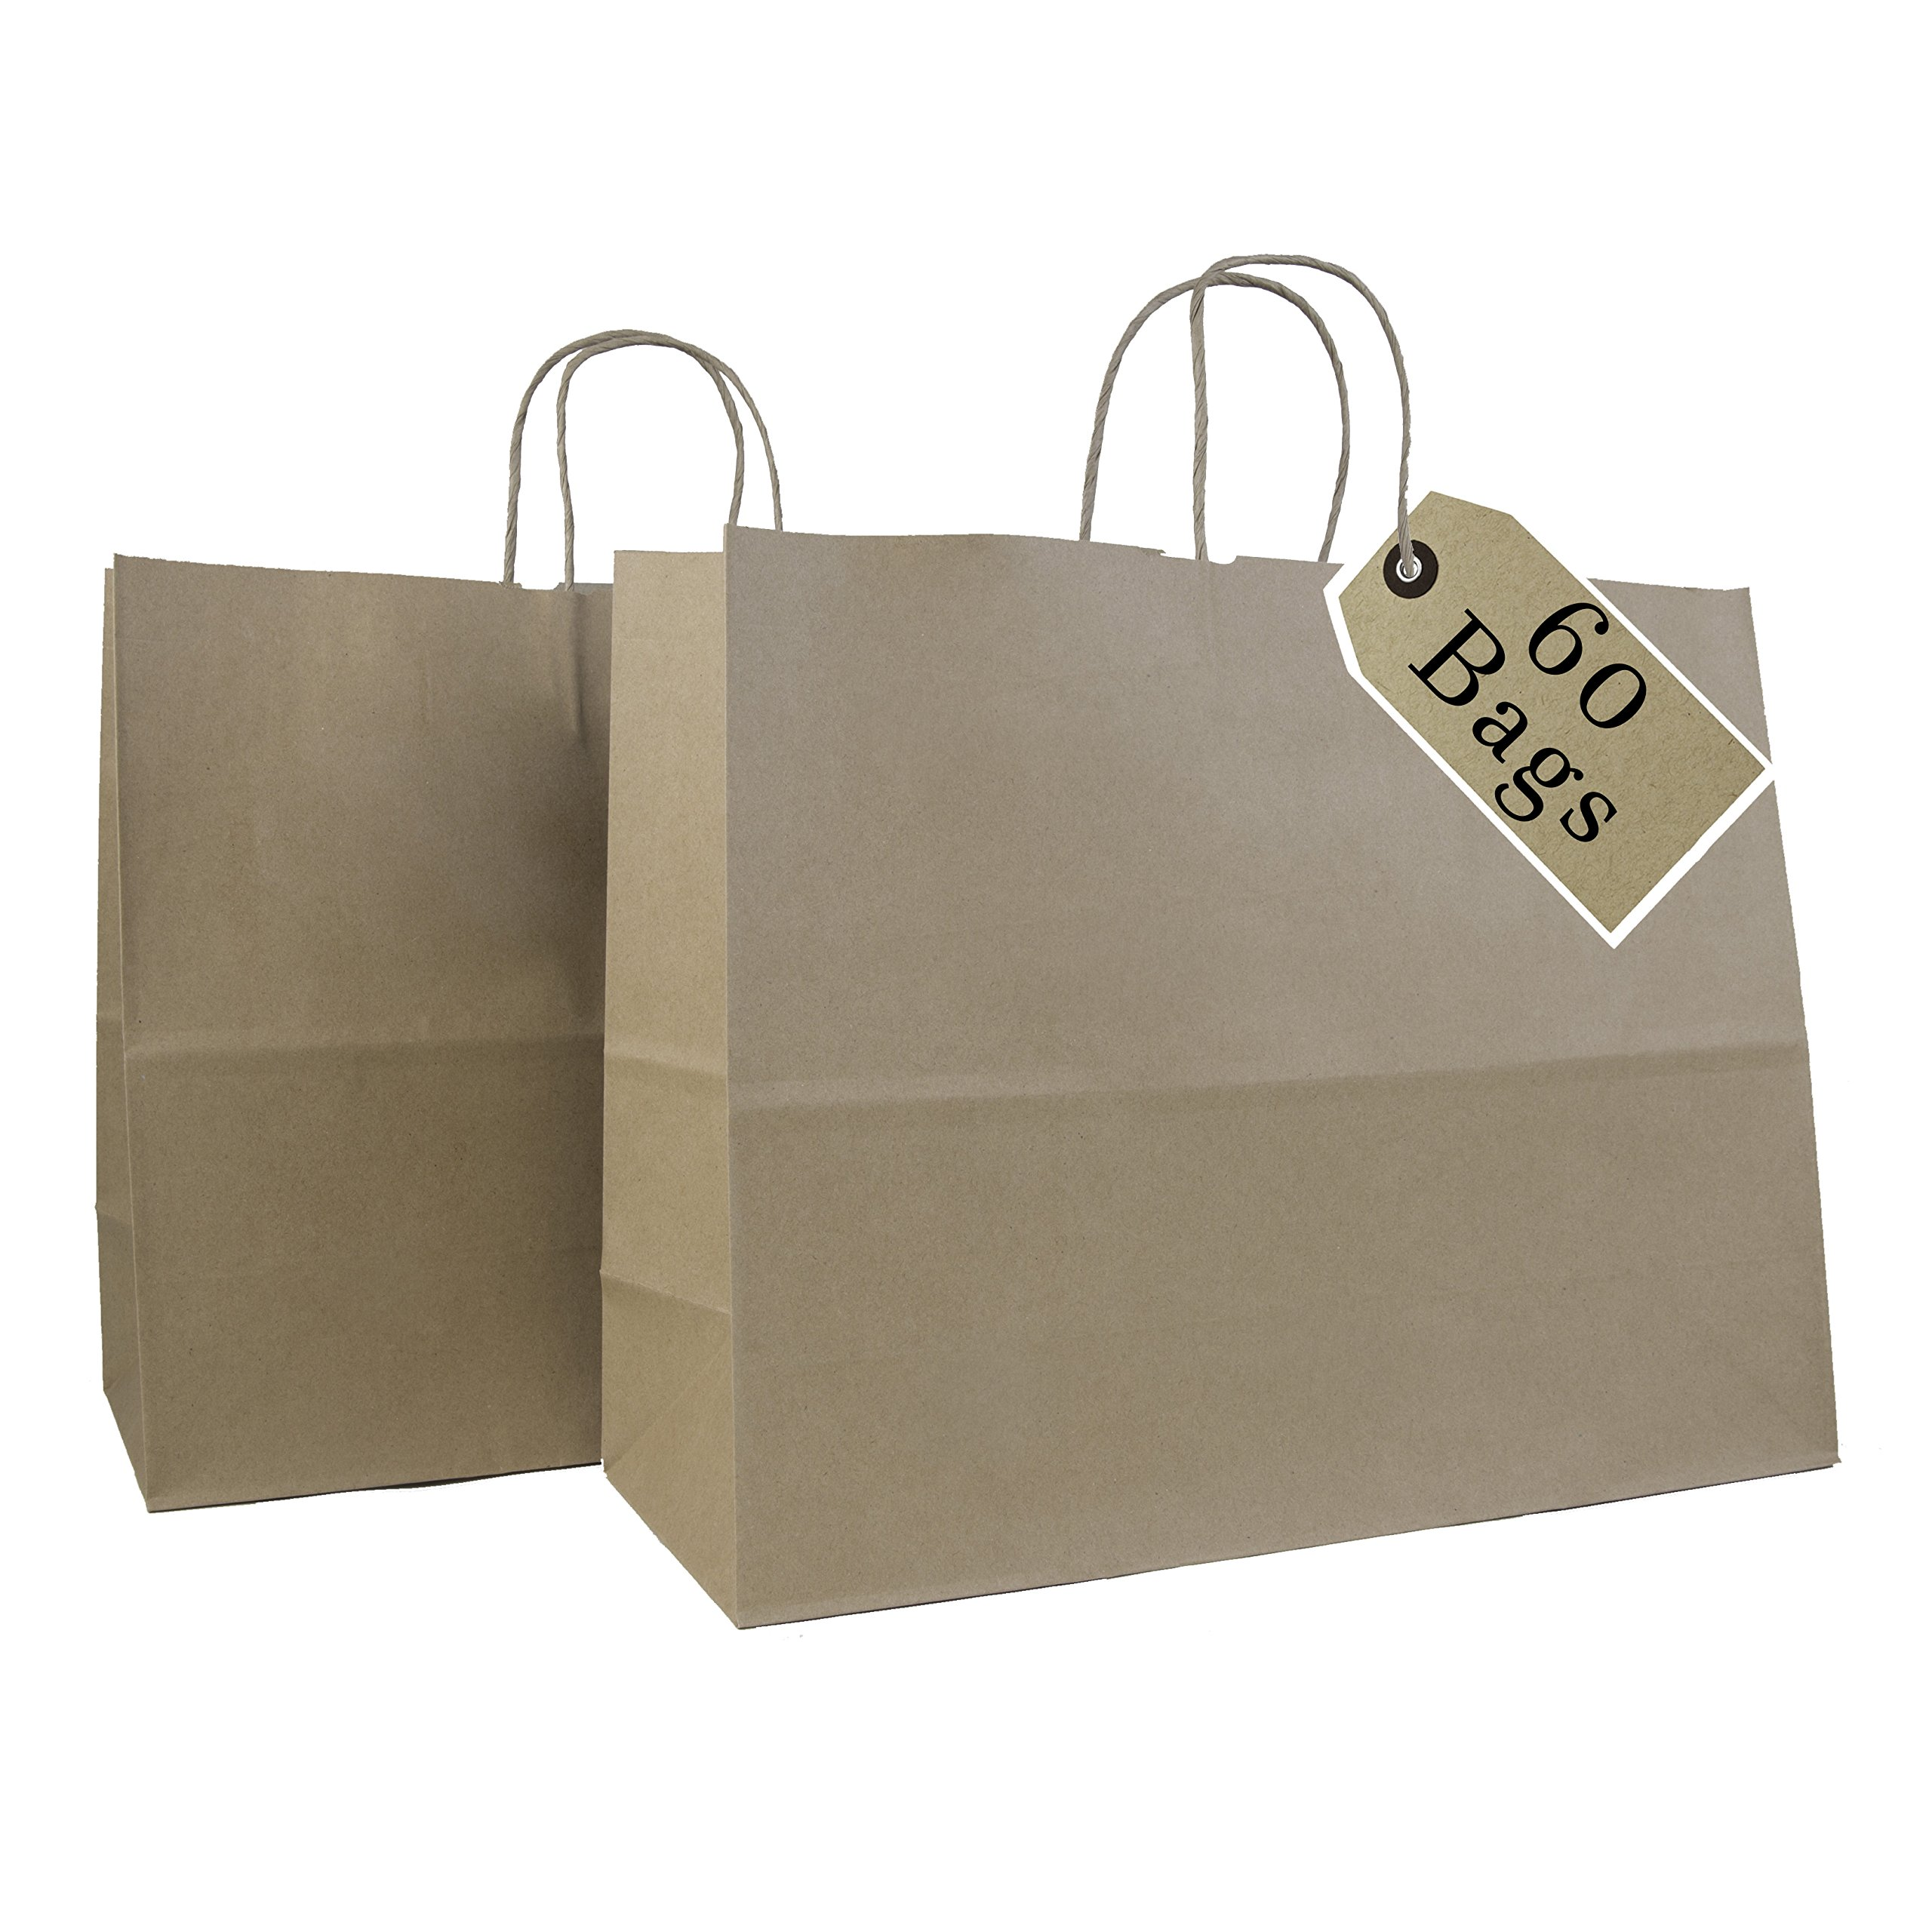 Incredible Packaging- 16'' x 6'' x 12'' Kraft Paper Bags with Handles for Shopping, Retail and Merchandise. Strong and Reusable - 60 Bags Count - 80 Paper Thickness (Brown)